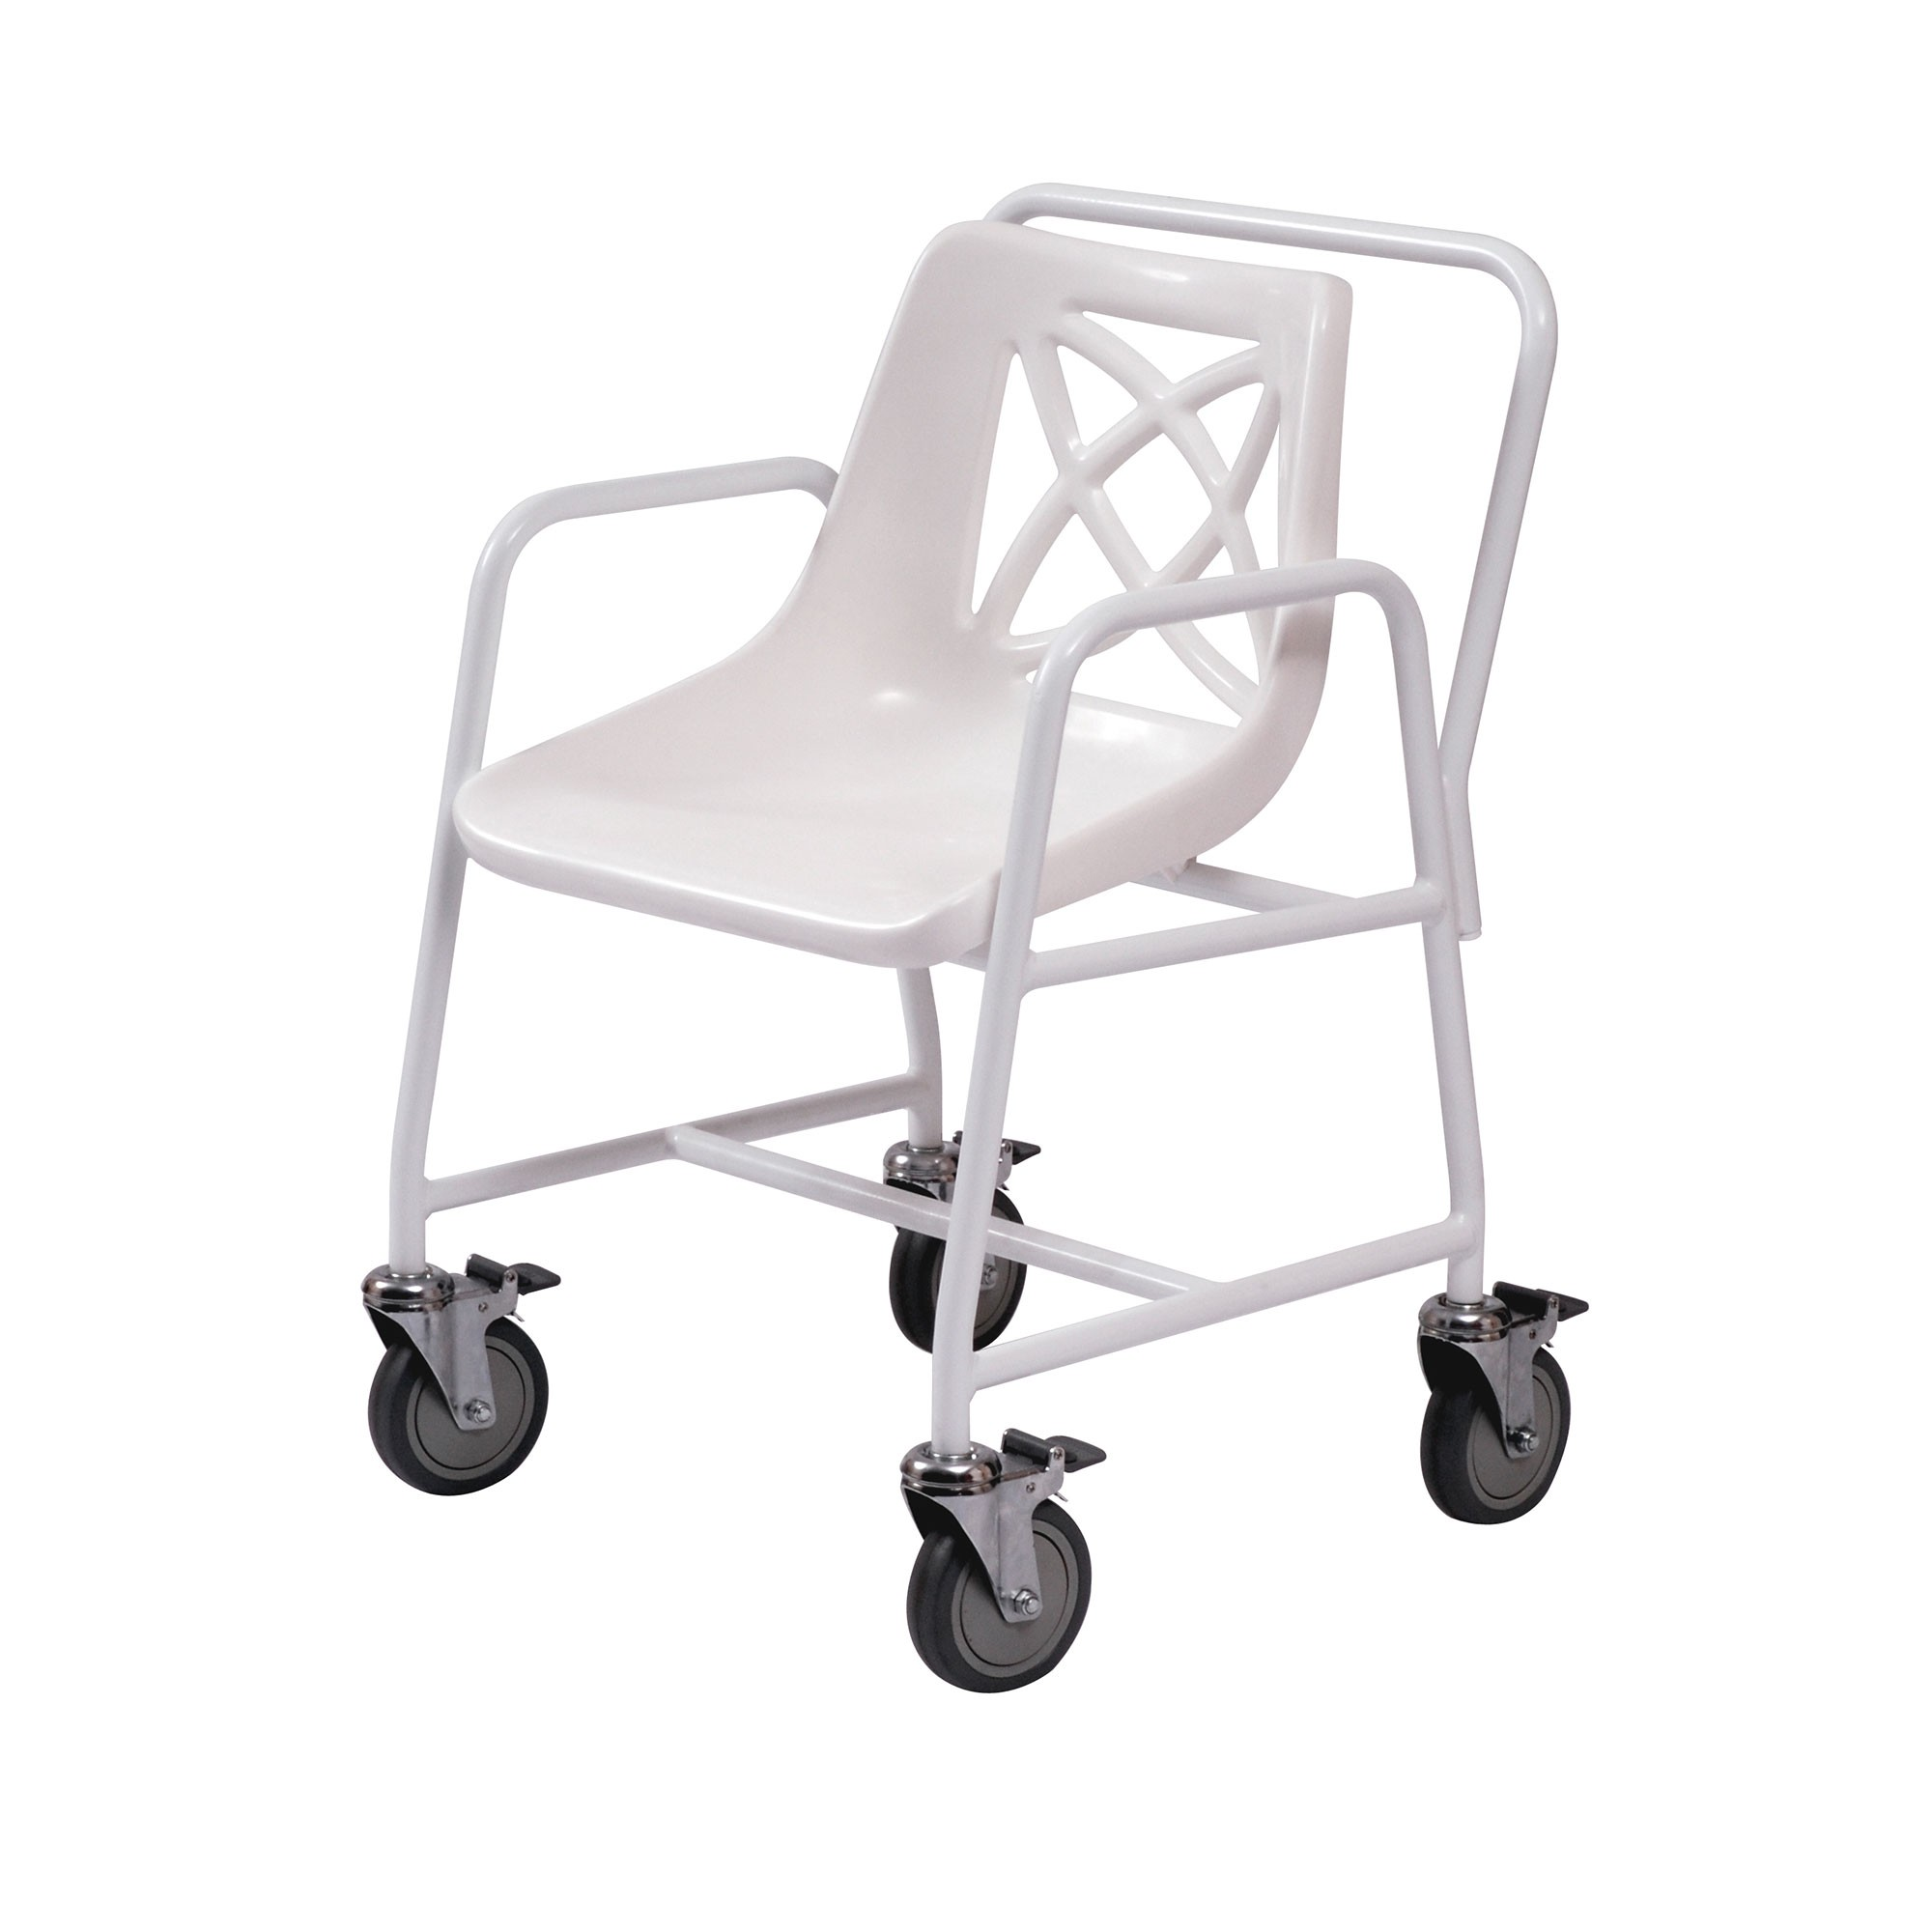 medical shower chairs workout office chair roma wheeled mobile at low prices